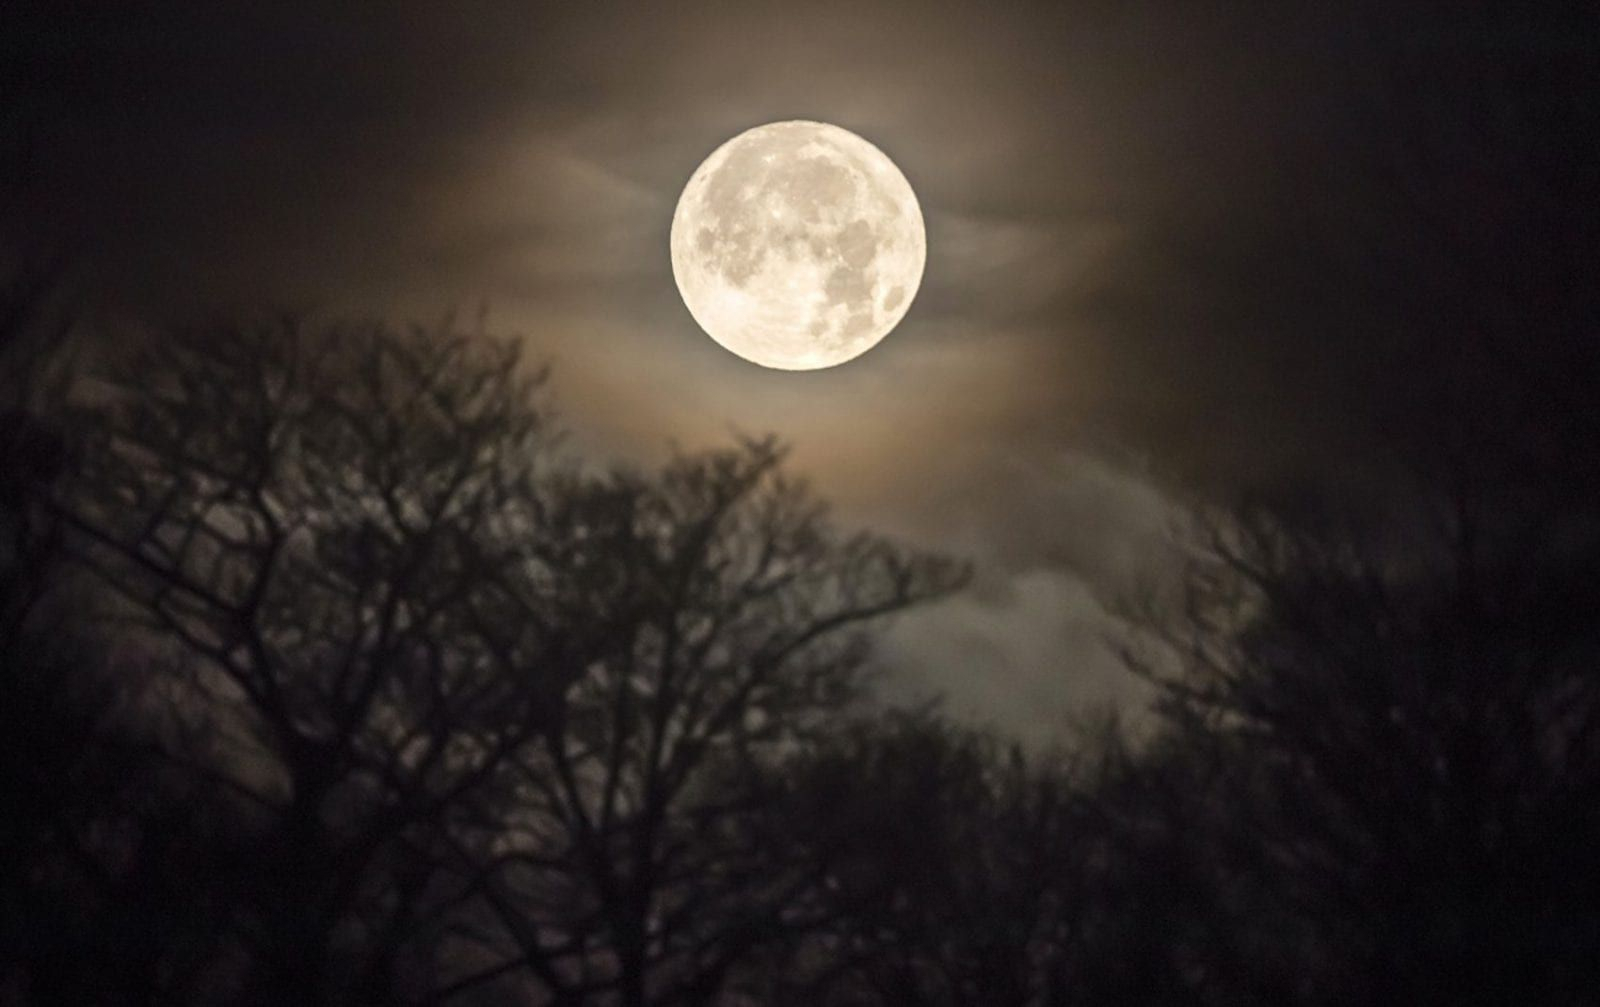 When Is The September Full Moon? Next Moon Dates, 2019 Lunar pertaining to What Is The Lunar Calendar Date Today